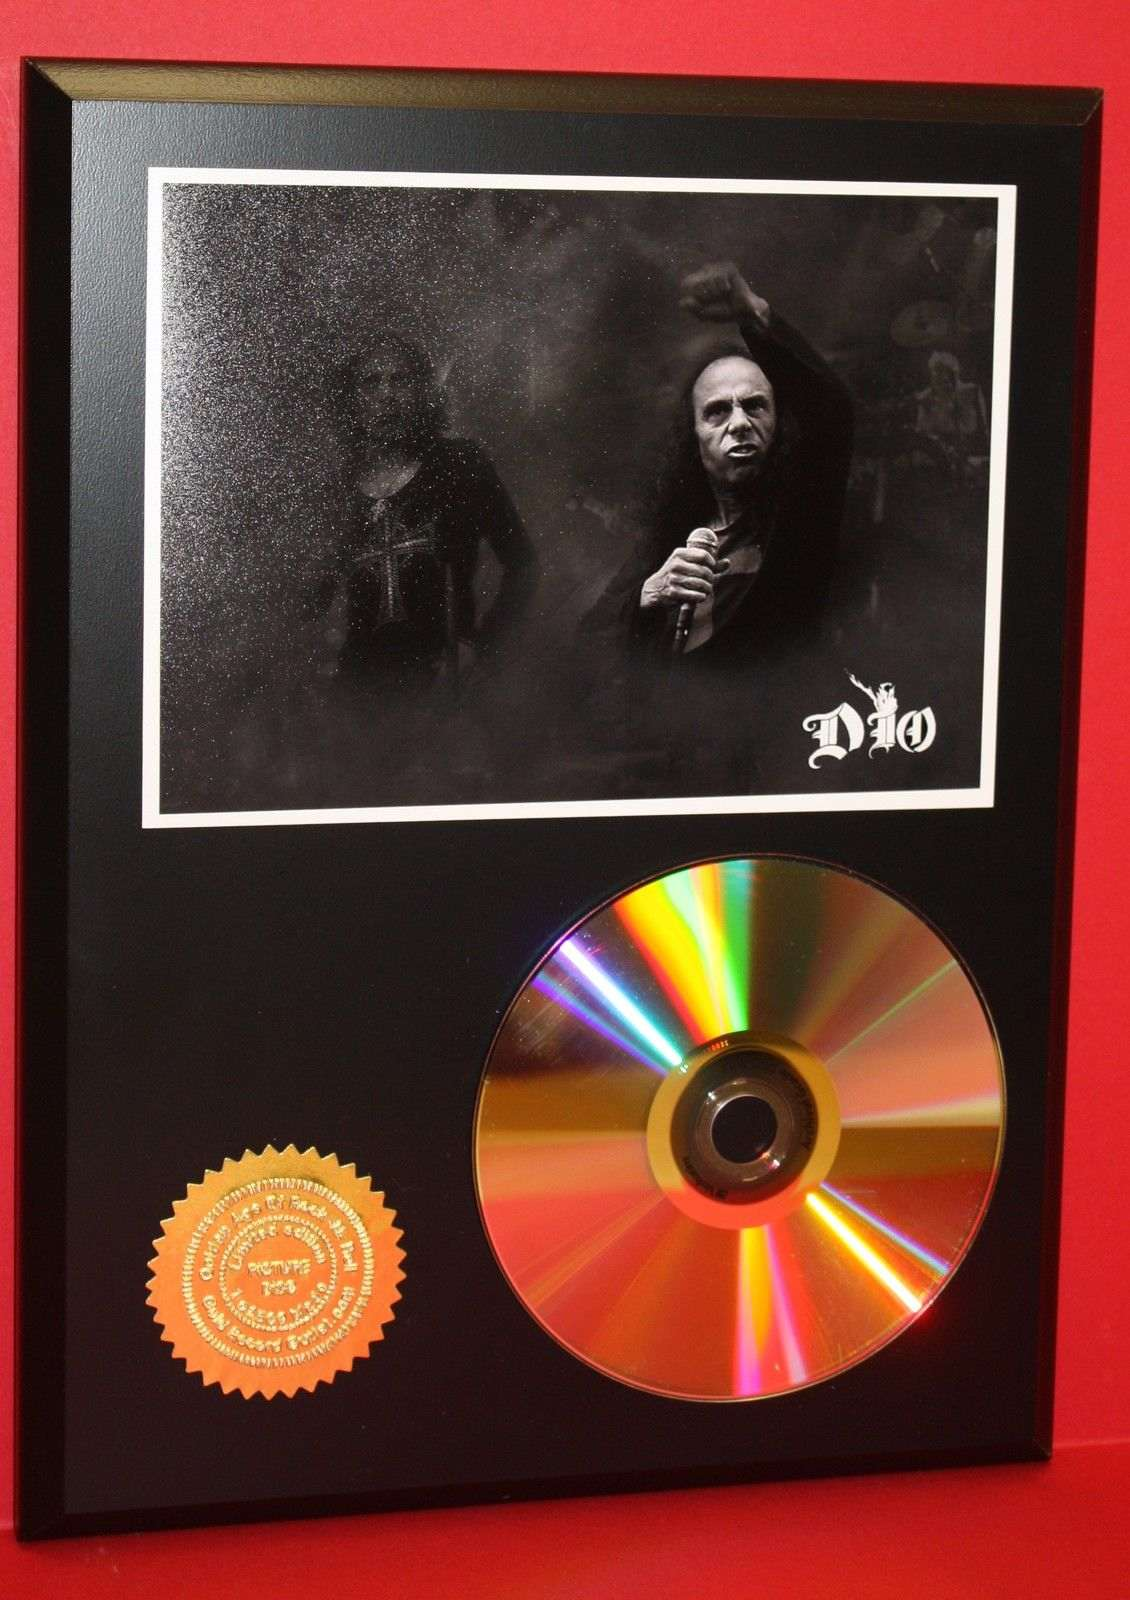 dio heavy metal 24kt gold cd disc collectible rare award quality plaque gold record awards. Black Bedroom Furniture Sets. Home Design Ideas